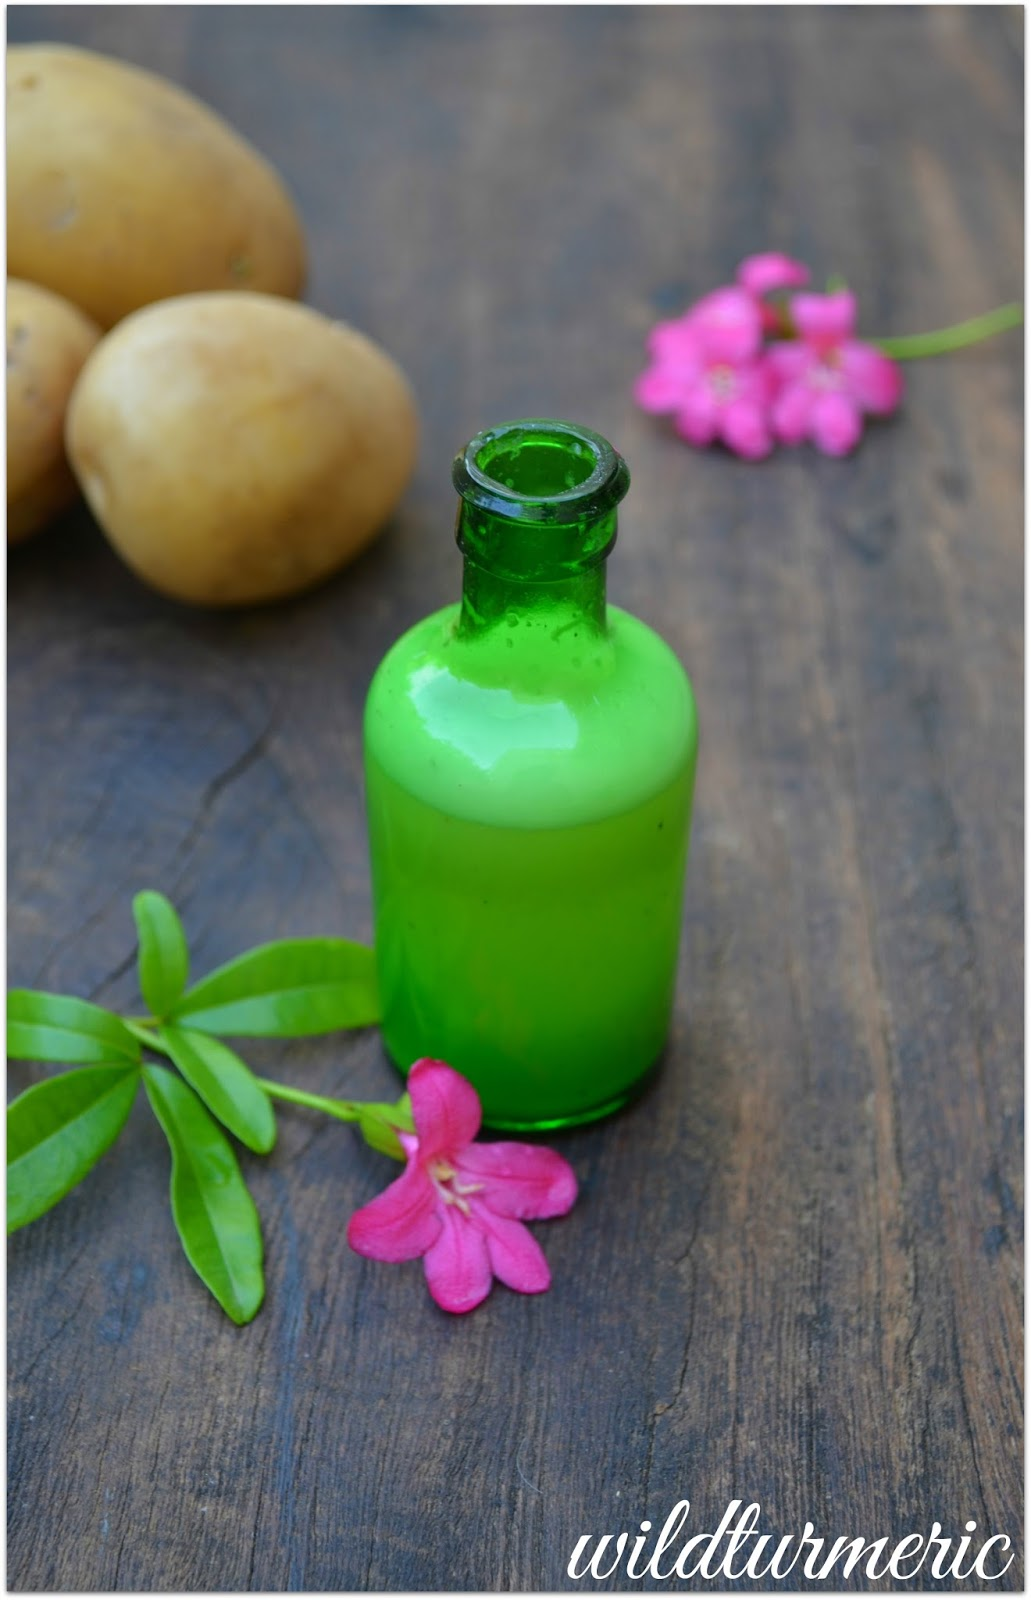 5 Top Benefits & Uses Of Potato Juice For Hair Growth